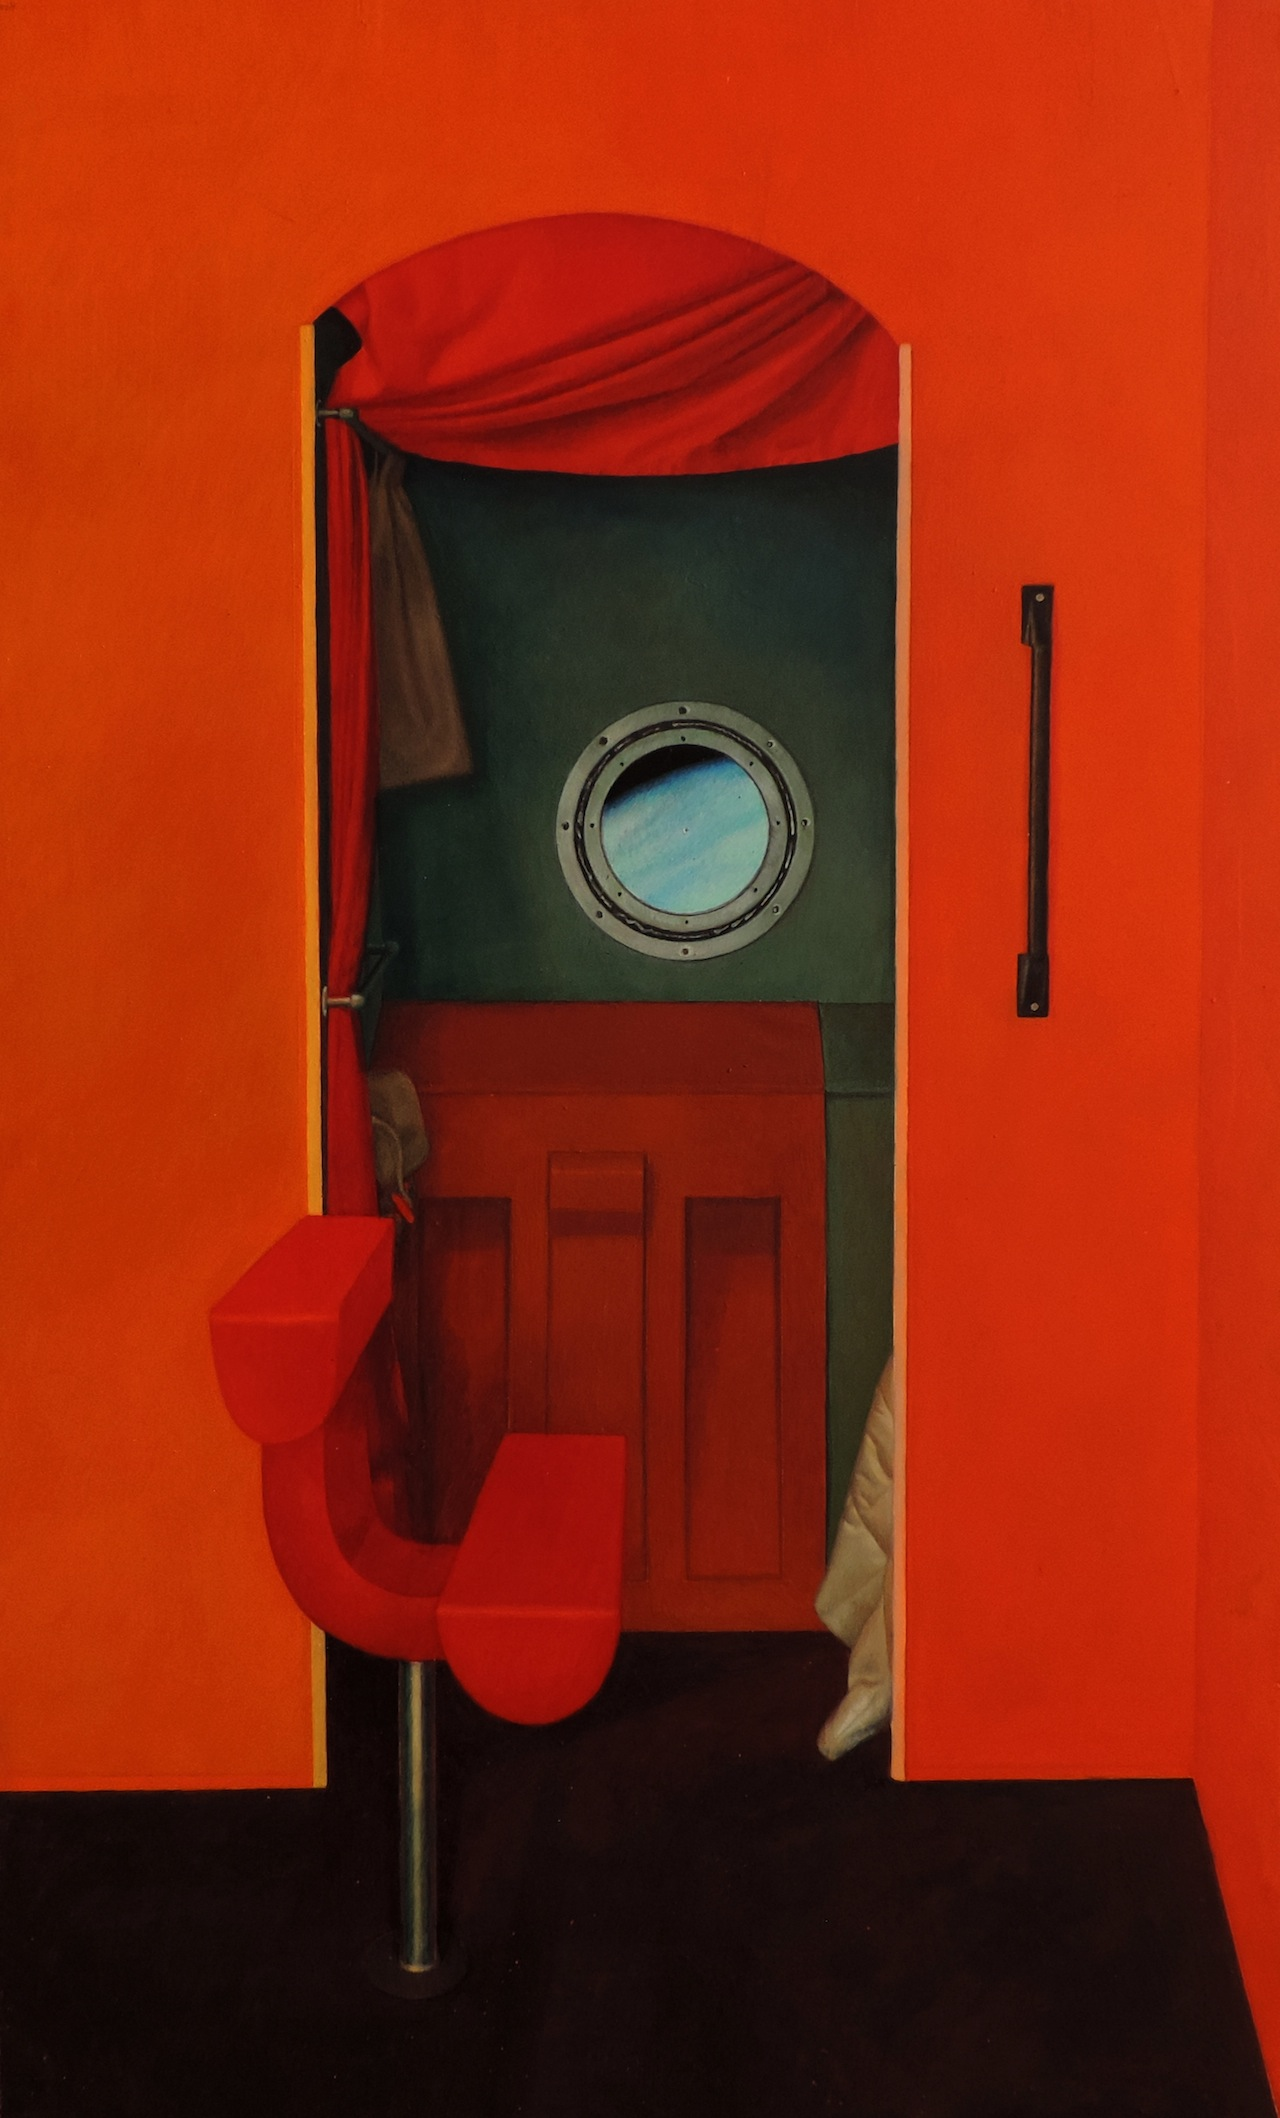 TAISIA KOROTKOVA / MIR STATION. SLEEPING ROOM. 2015 / TEMPERA ON GESSO ON WOODEN PANEL / 30  x 50 CM